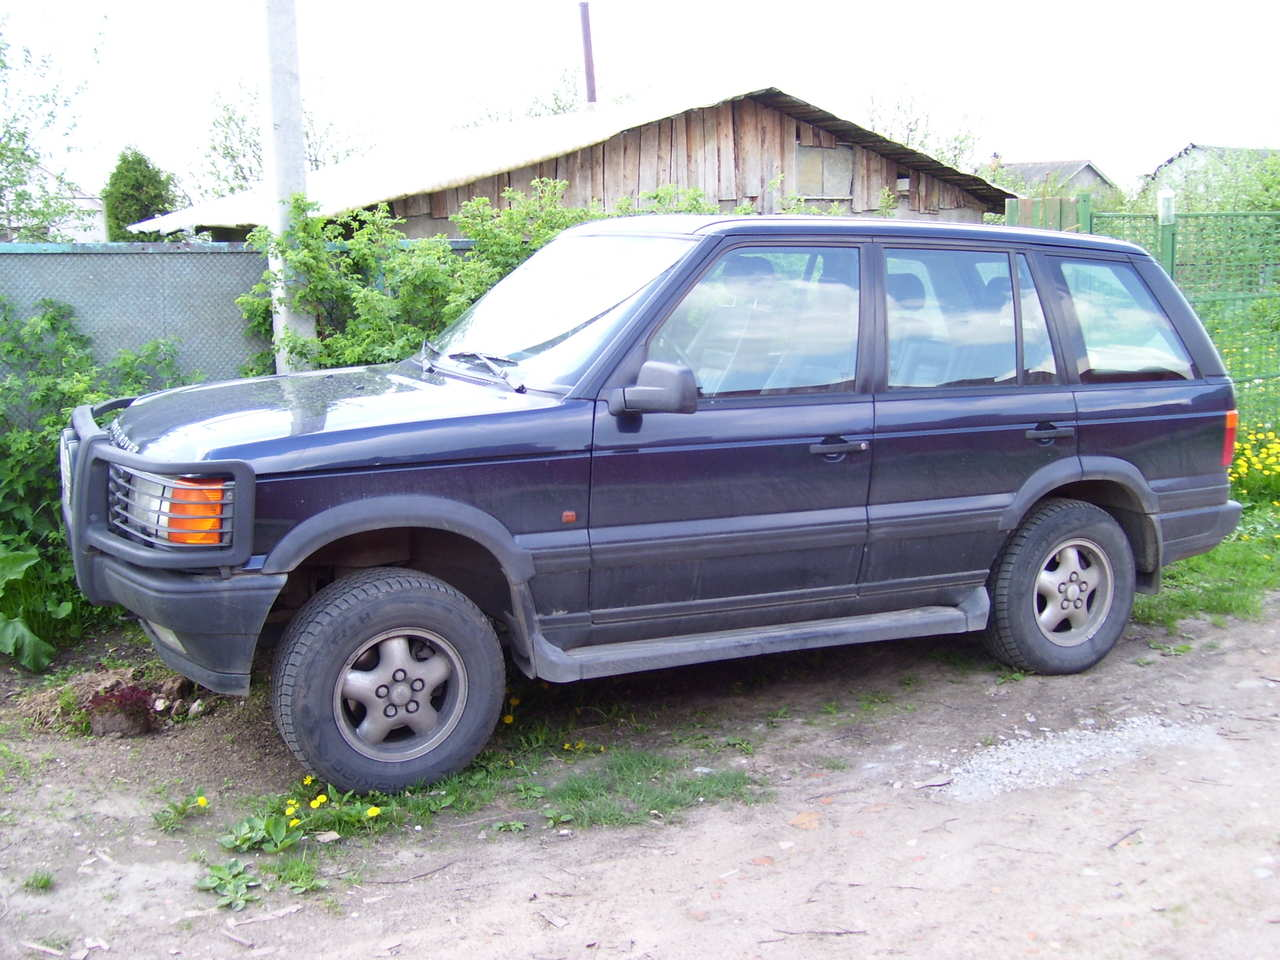 Land Rover Range Rover 4.6 1997 photo - 10